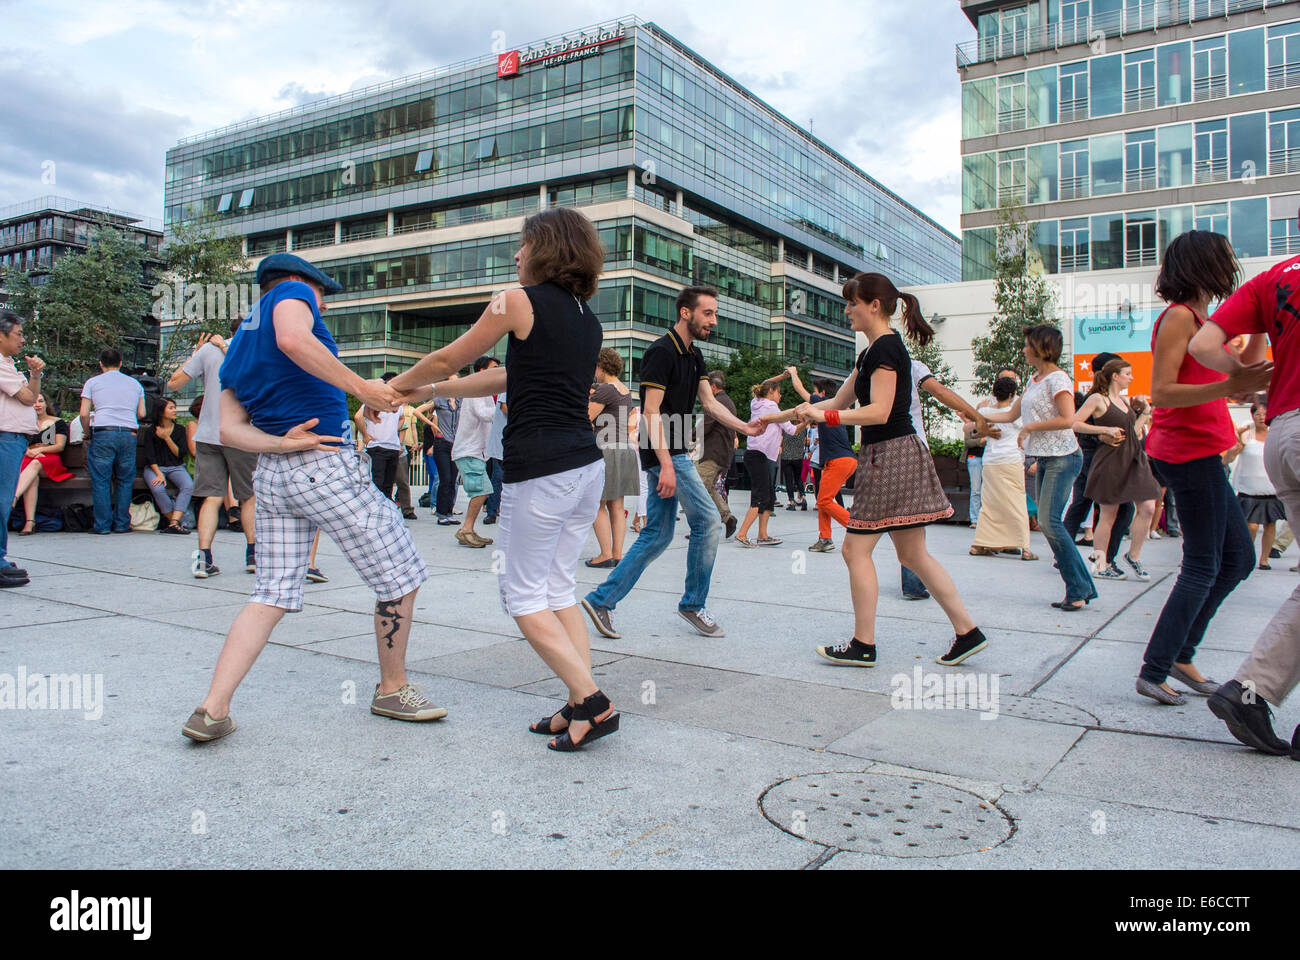 Paris, France, Crowd of Tourists enjoying Public Events, Street Swing Dancing, Bibliotheque Area, adult extracurricular - Stock Image